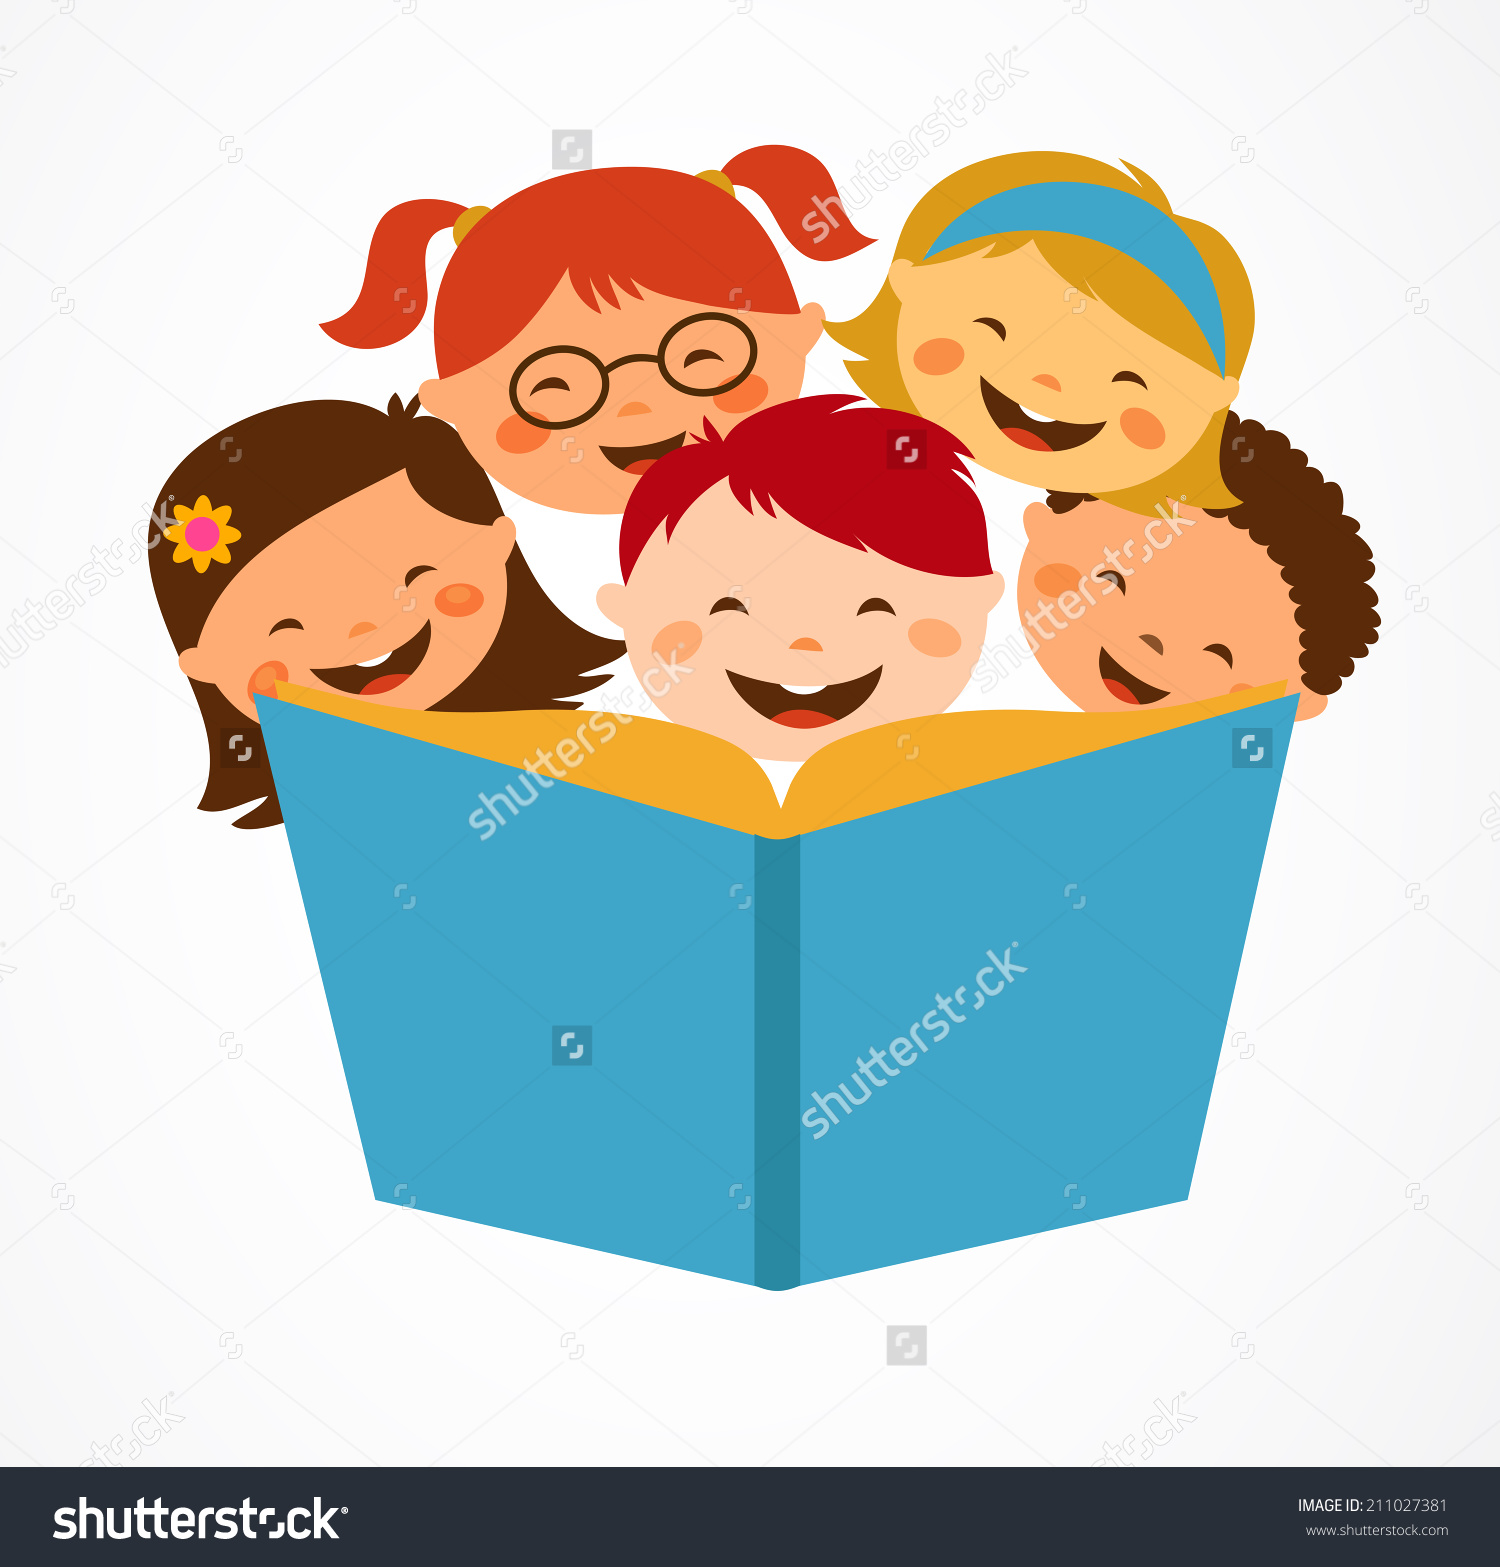 Group Children Enjoying Reading Together Stock Vector 211027381.